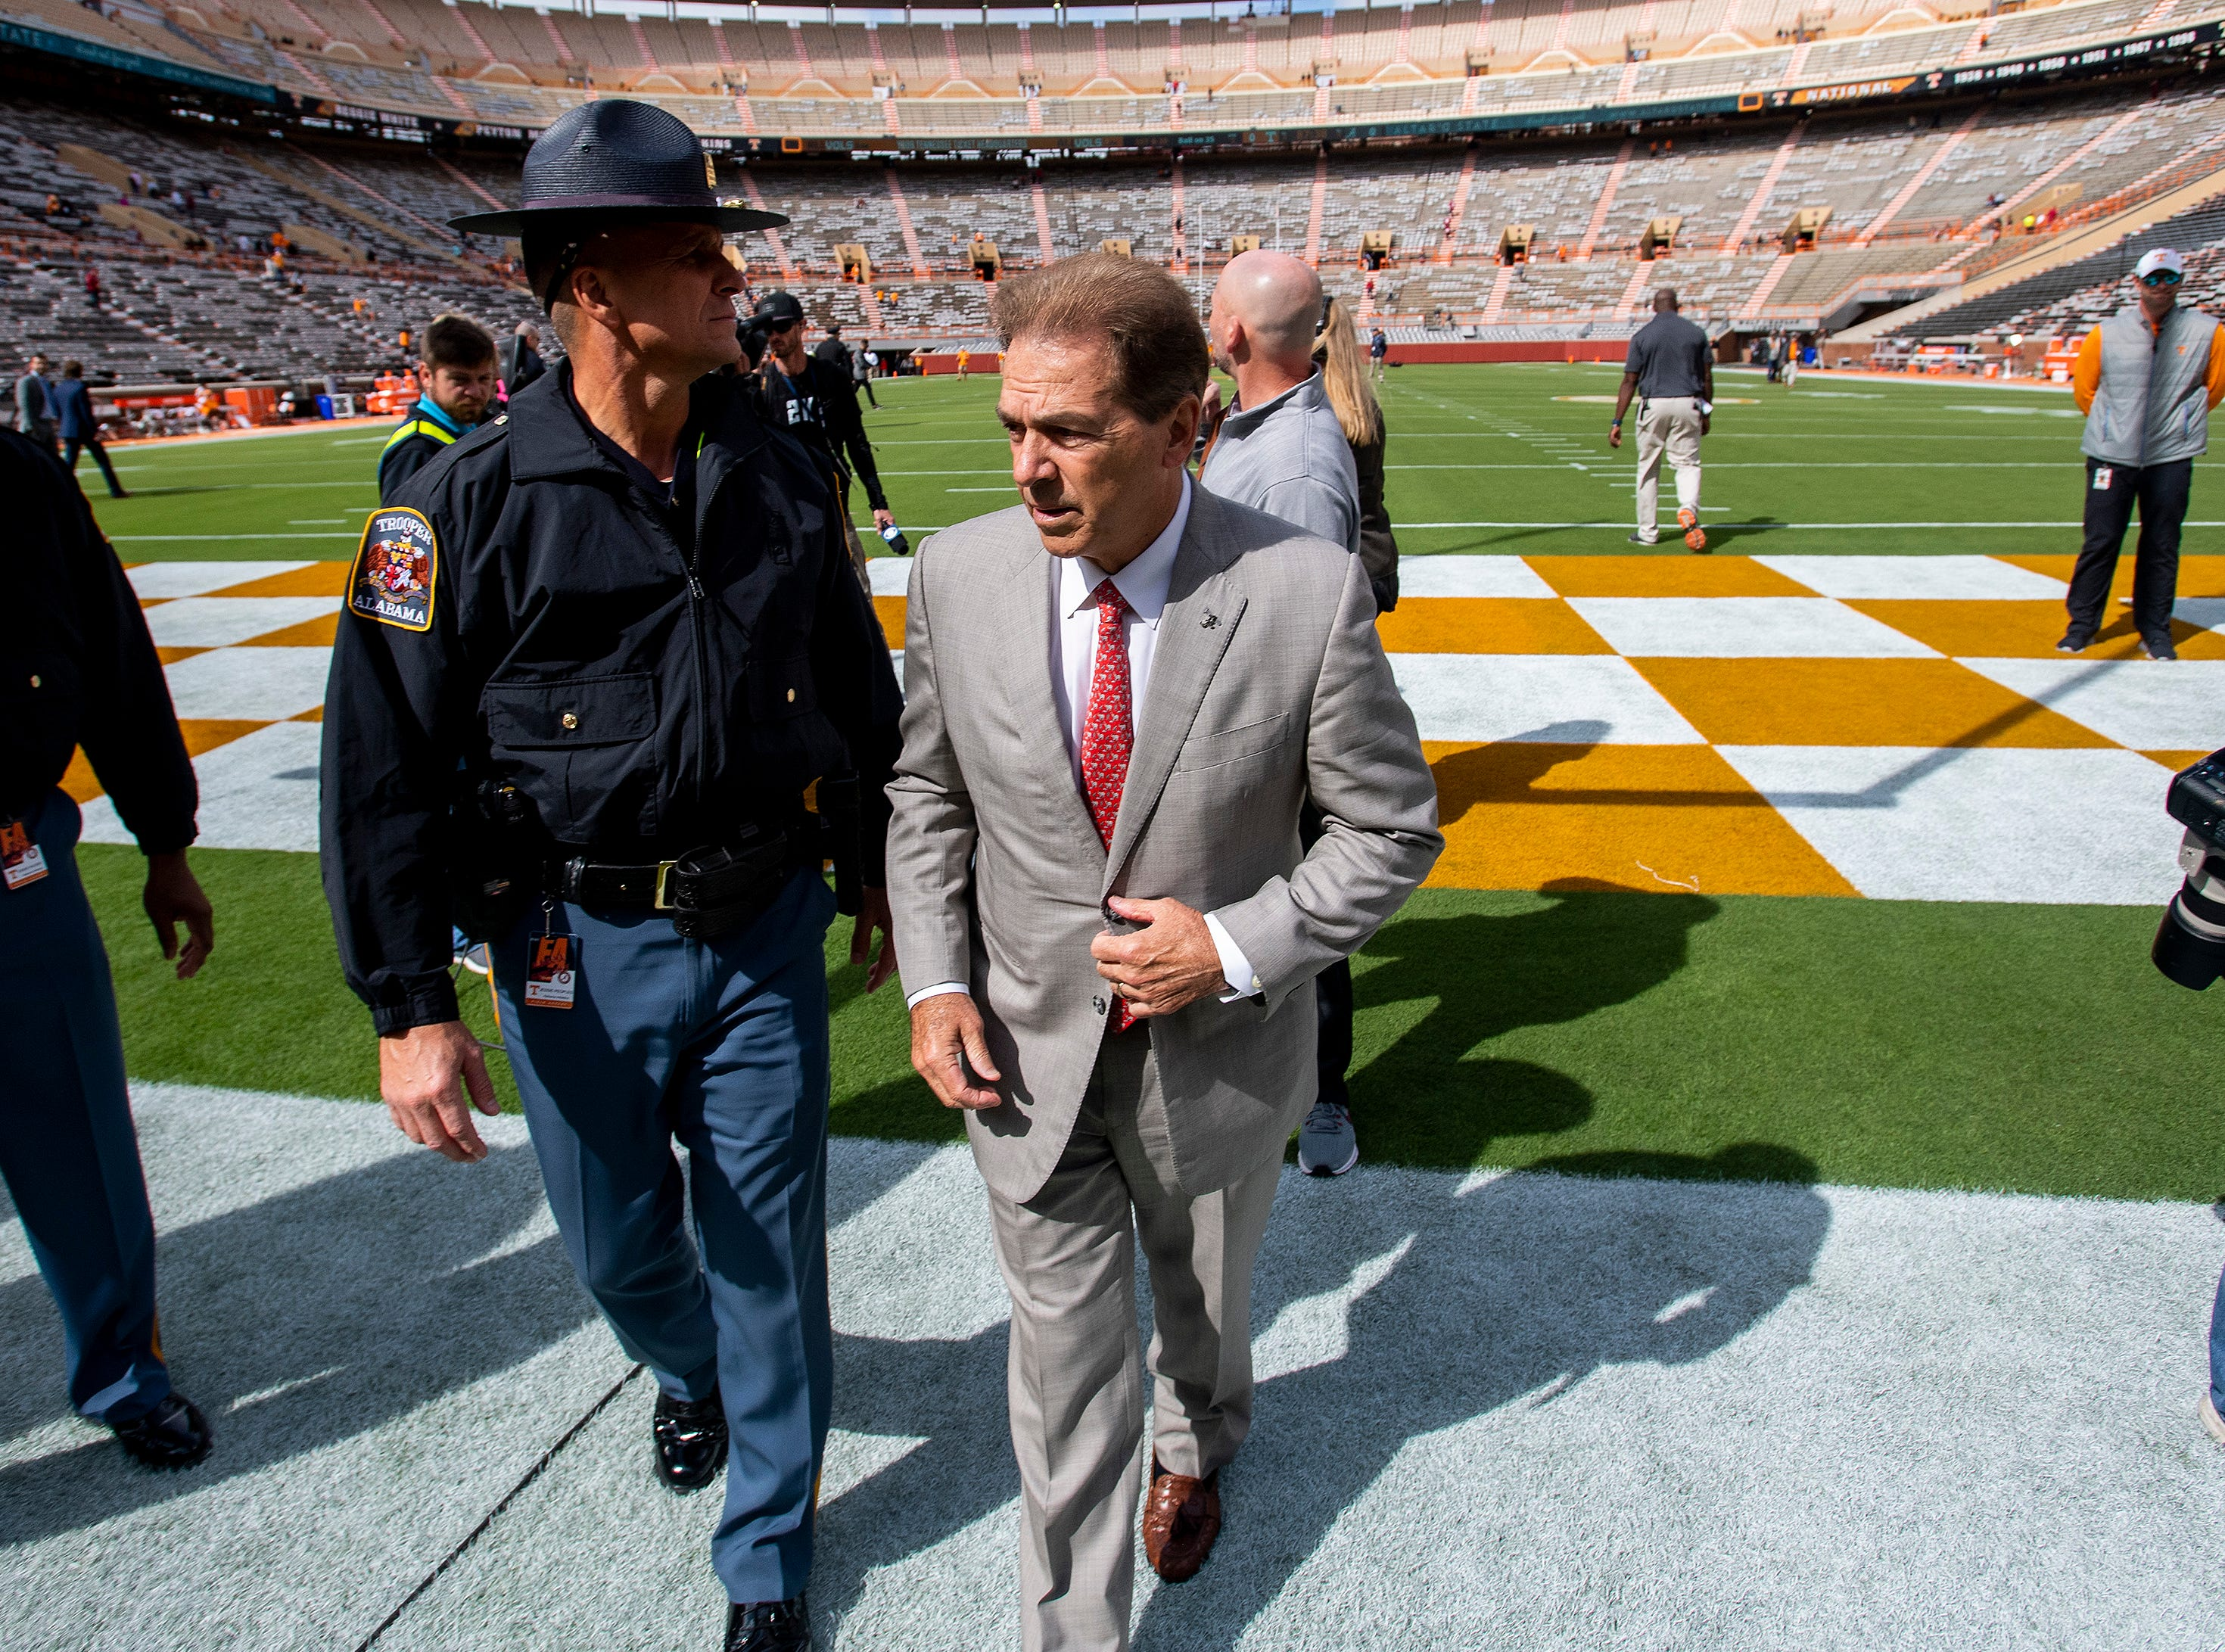 Alabama head coach Nick Saban walks the field as the team arrives for the Tennessee game at Neyland Stadium in Knoxville, Tn., on Saturday October 20, 2018.